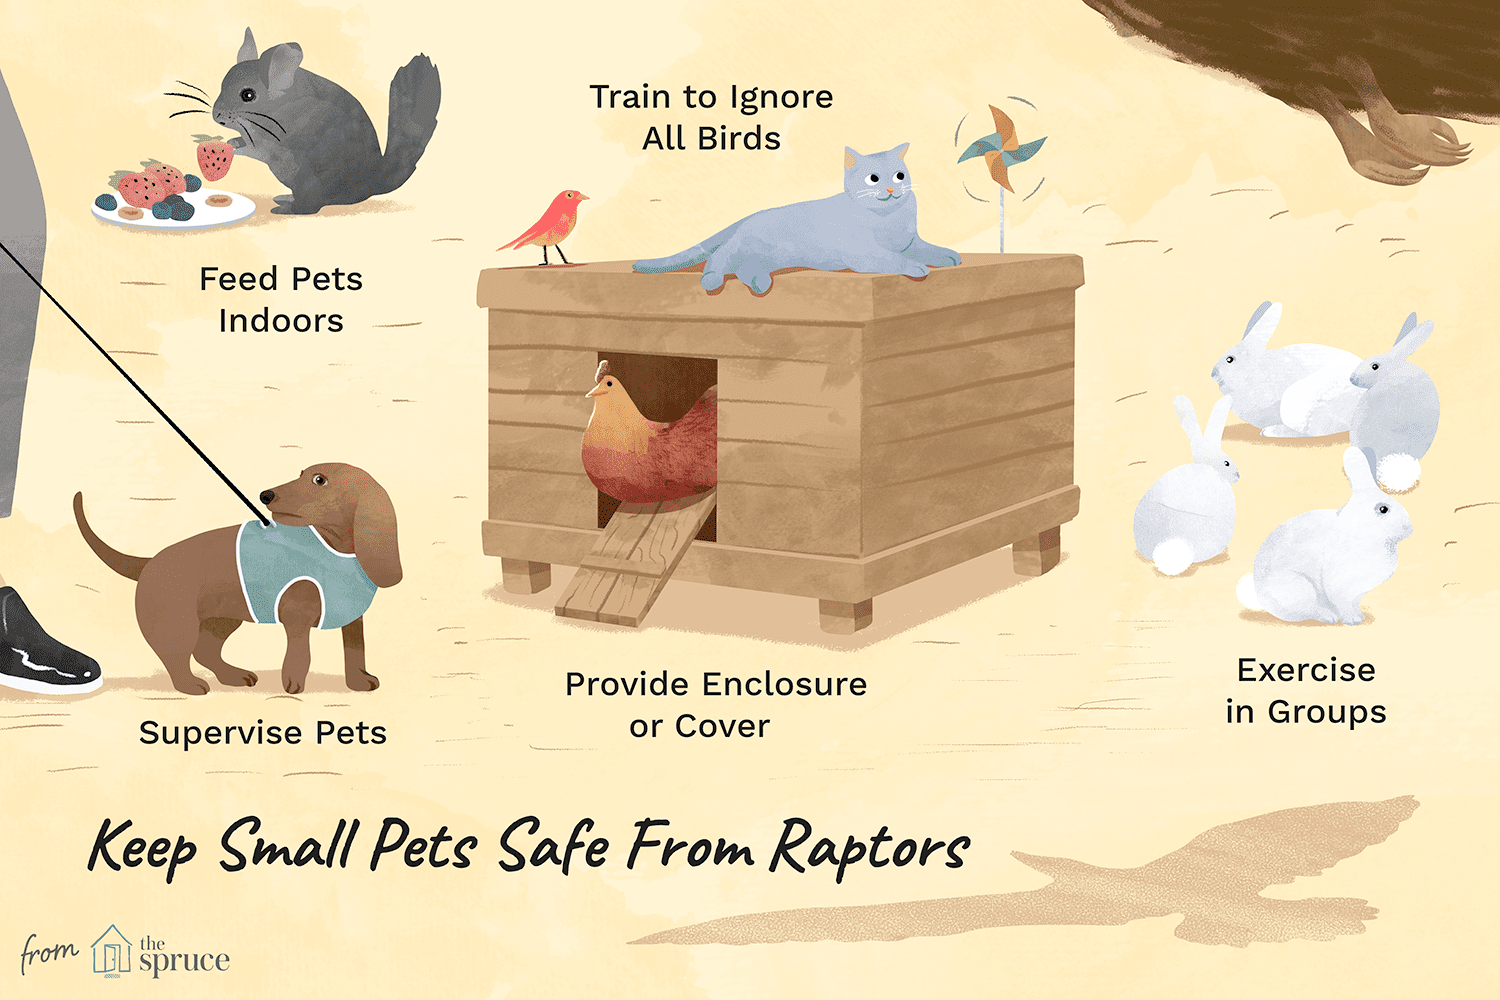 An illustration depicting how to keep small pets safe from raptors